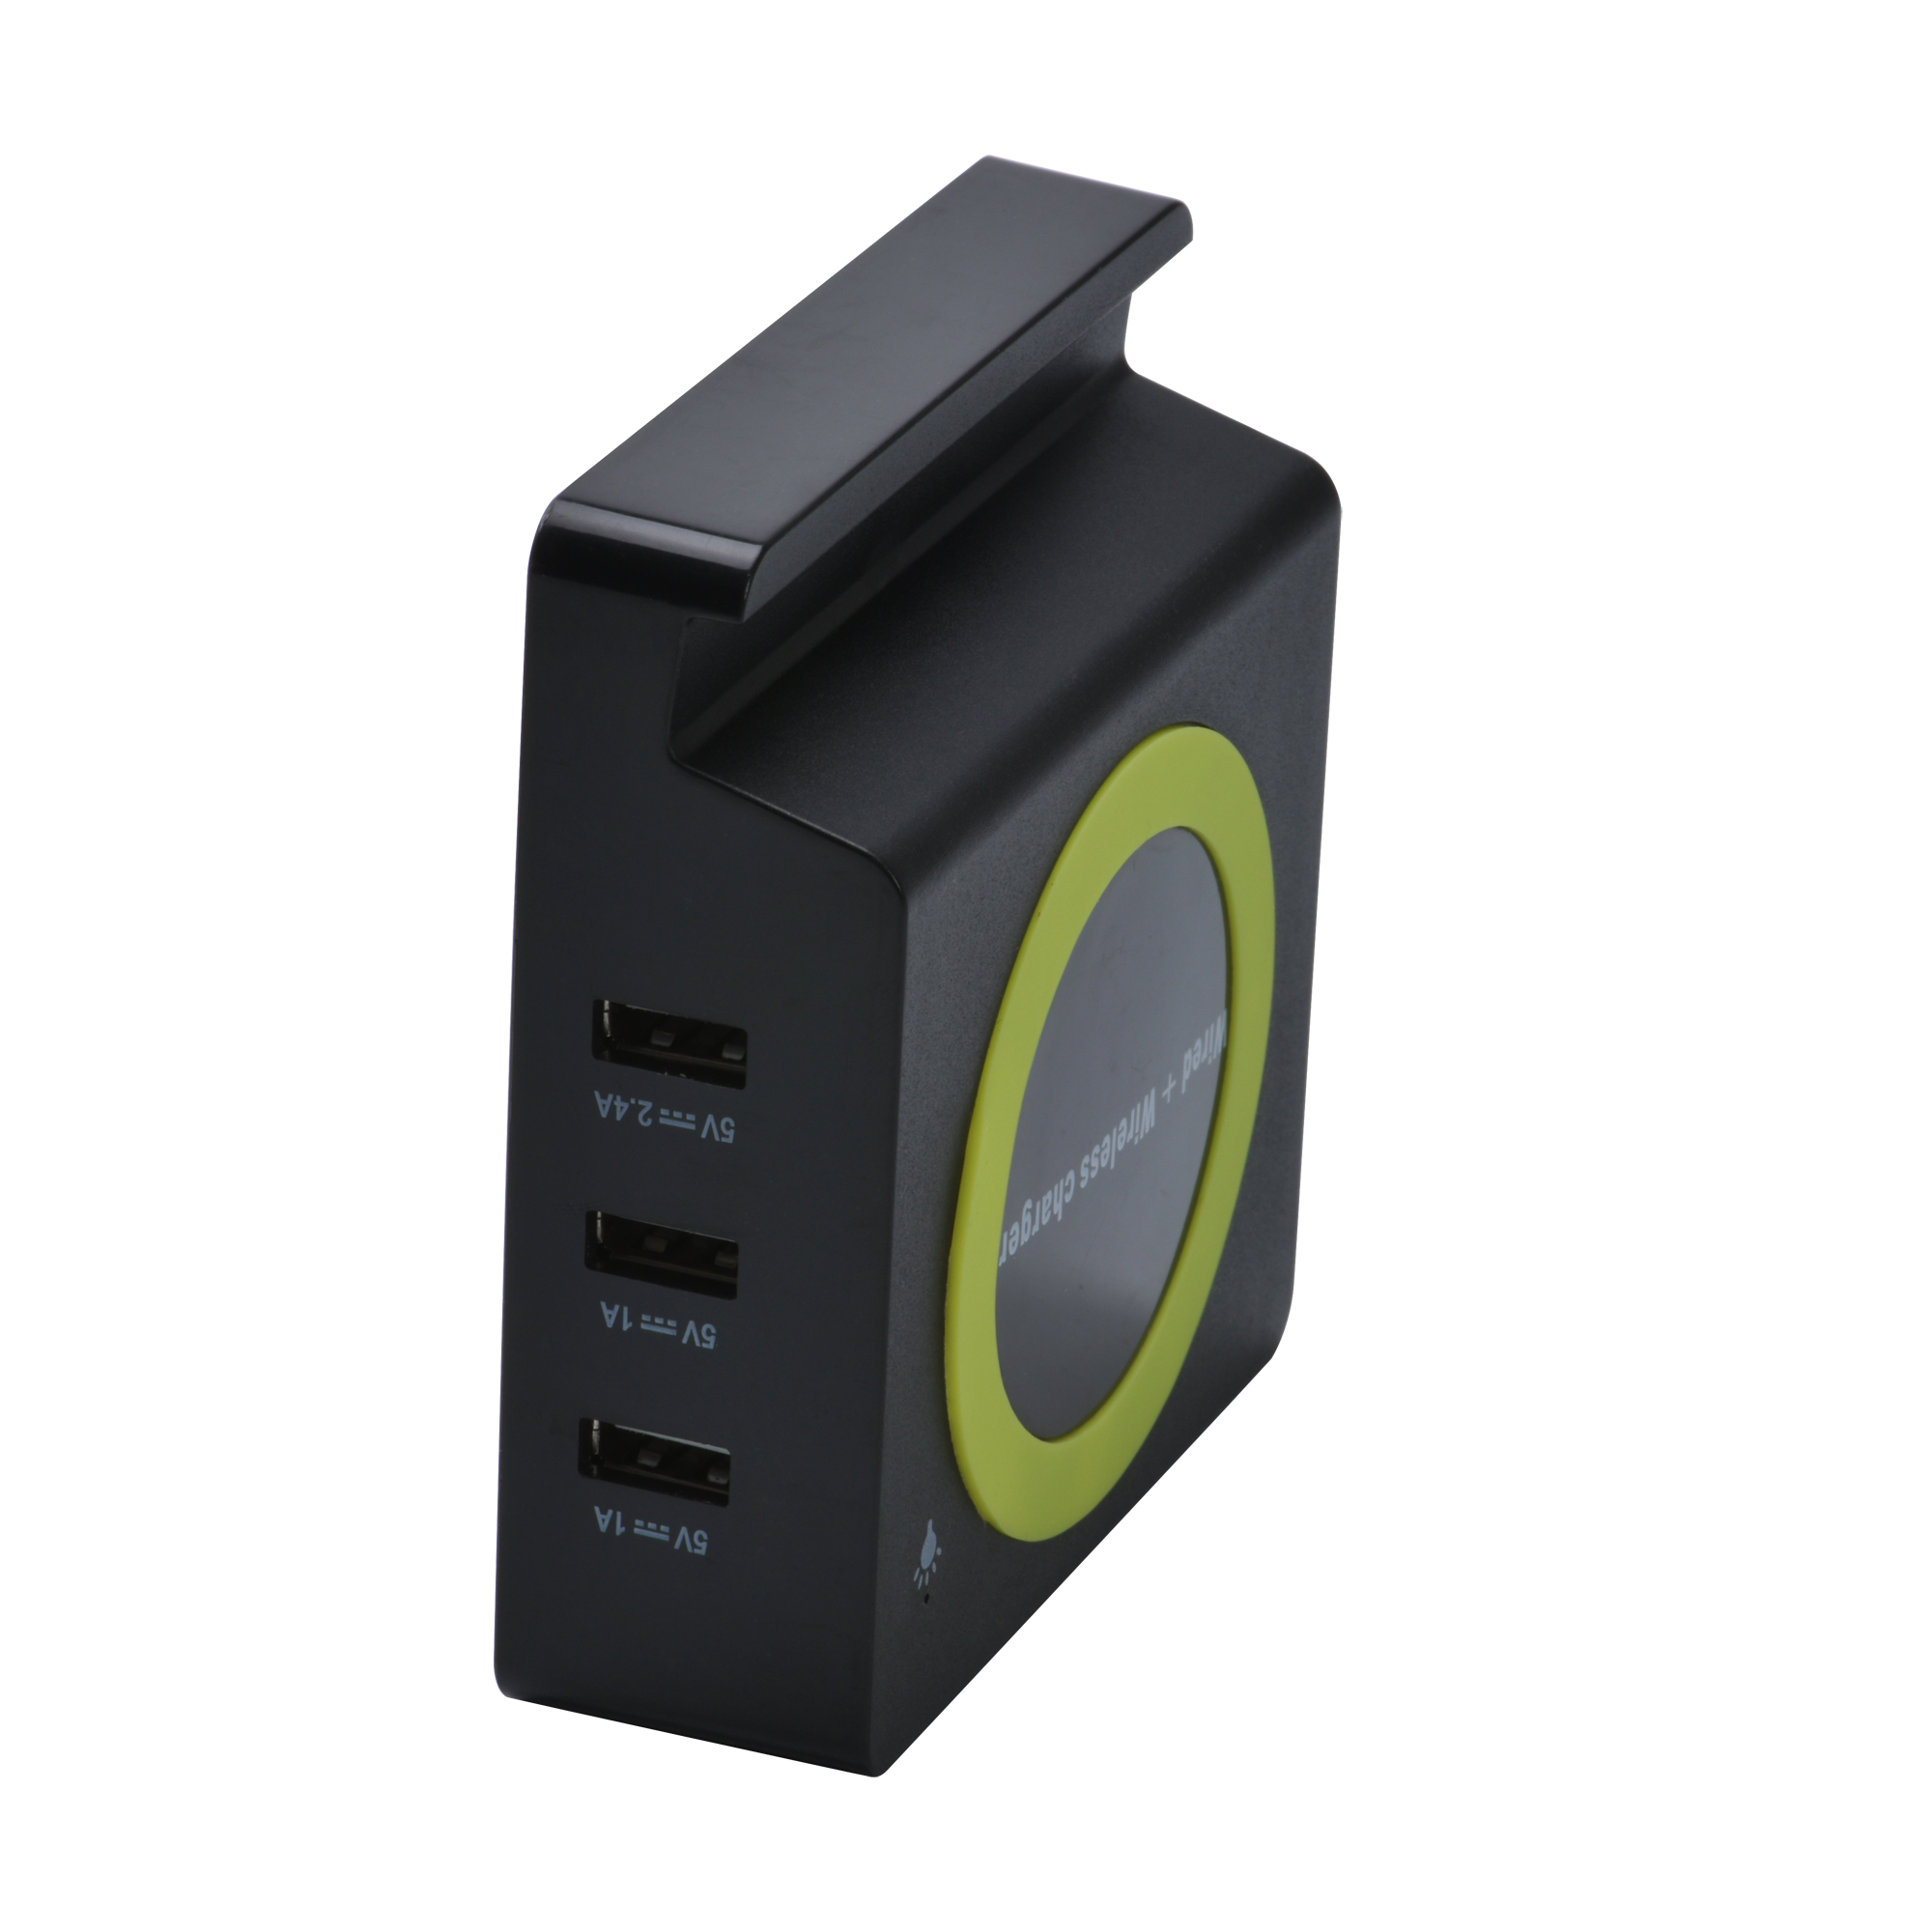 Fast Qi wireless charger station with 3 USB ports 2